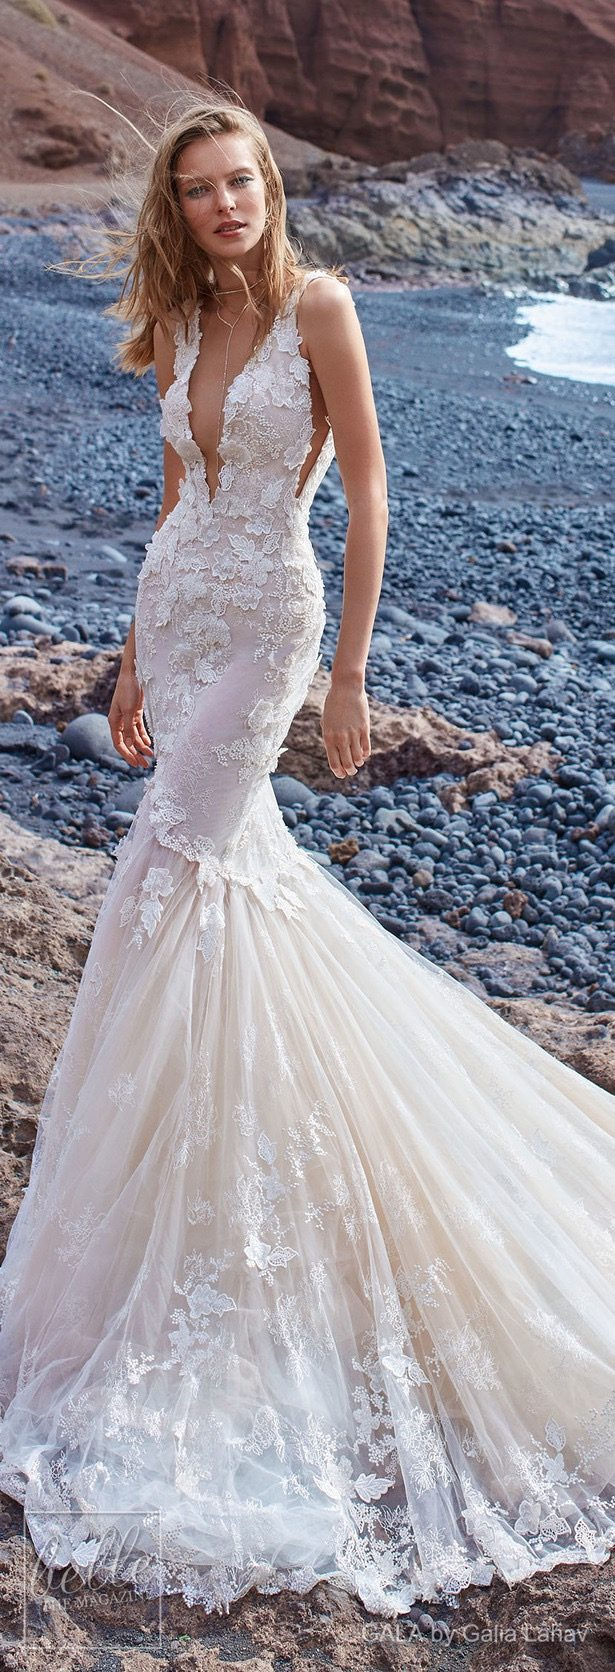 K'Mich Weddings - wedding planning - wedding dresses - GALA by Galia Lahav Wedding Dress Collection No.5GALA by Galia Lahav Wedding Dress Collection No.5